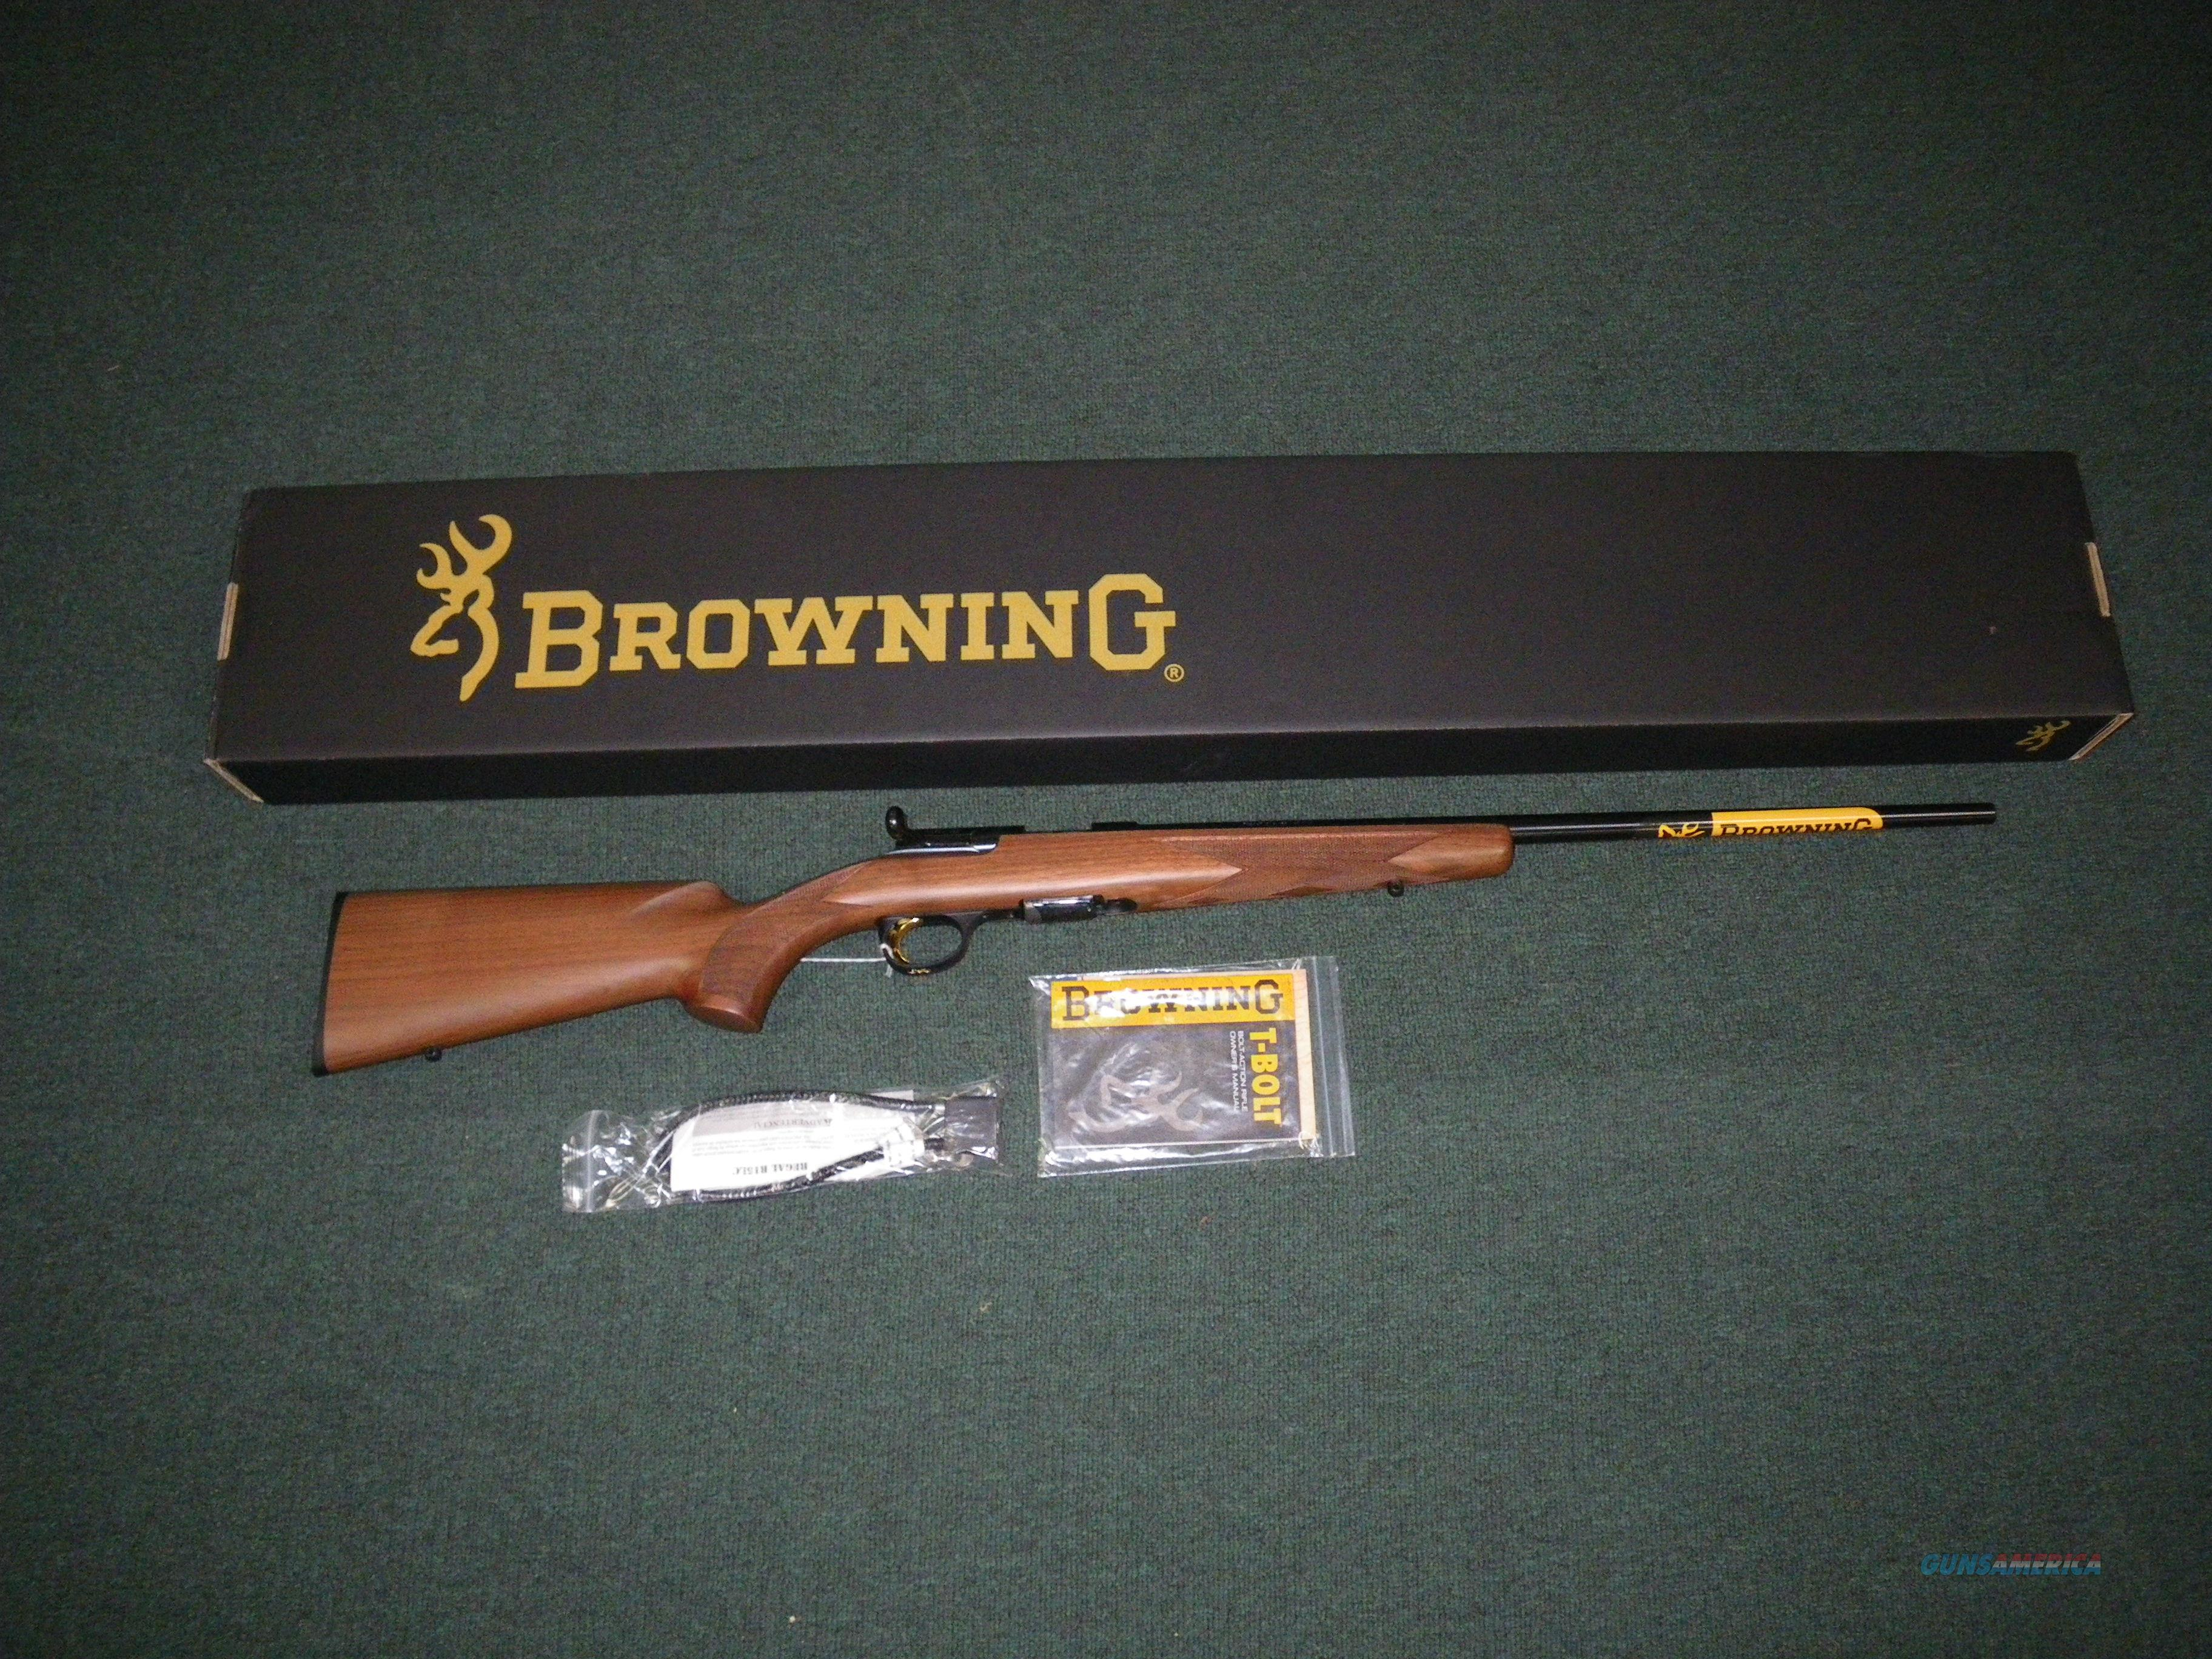 "Browning T-Bolt Sporter Wood 17 HMR 22"" #025175270  Guns > Rifles > Browning Rifles > Bolt Action > Hunting > Blue"